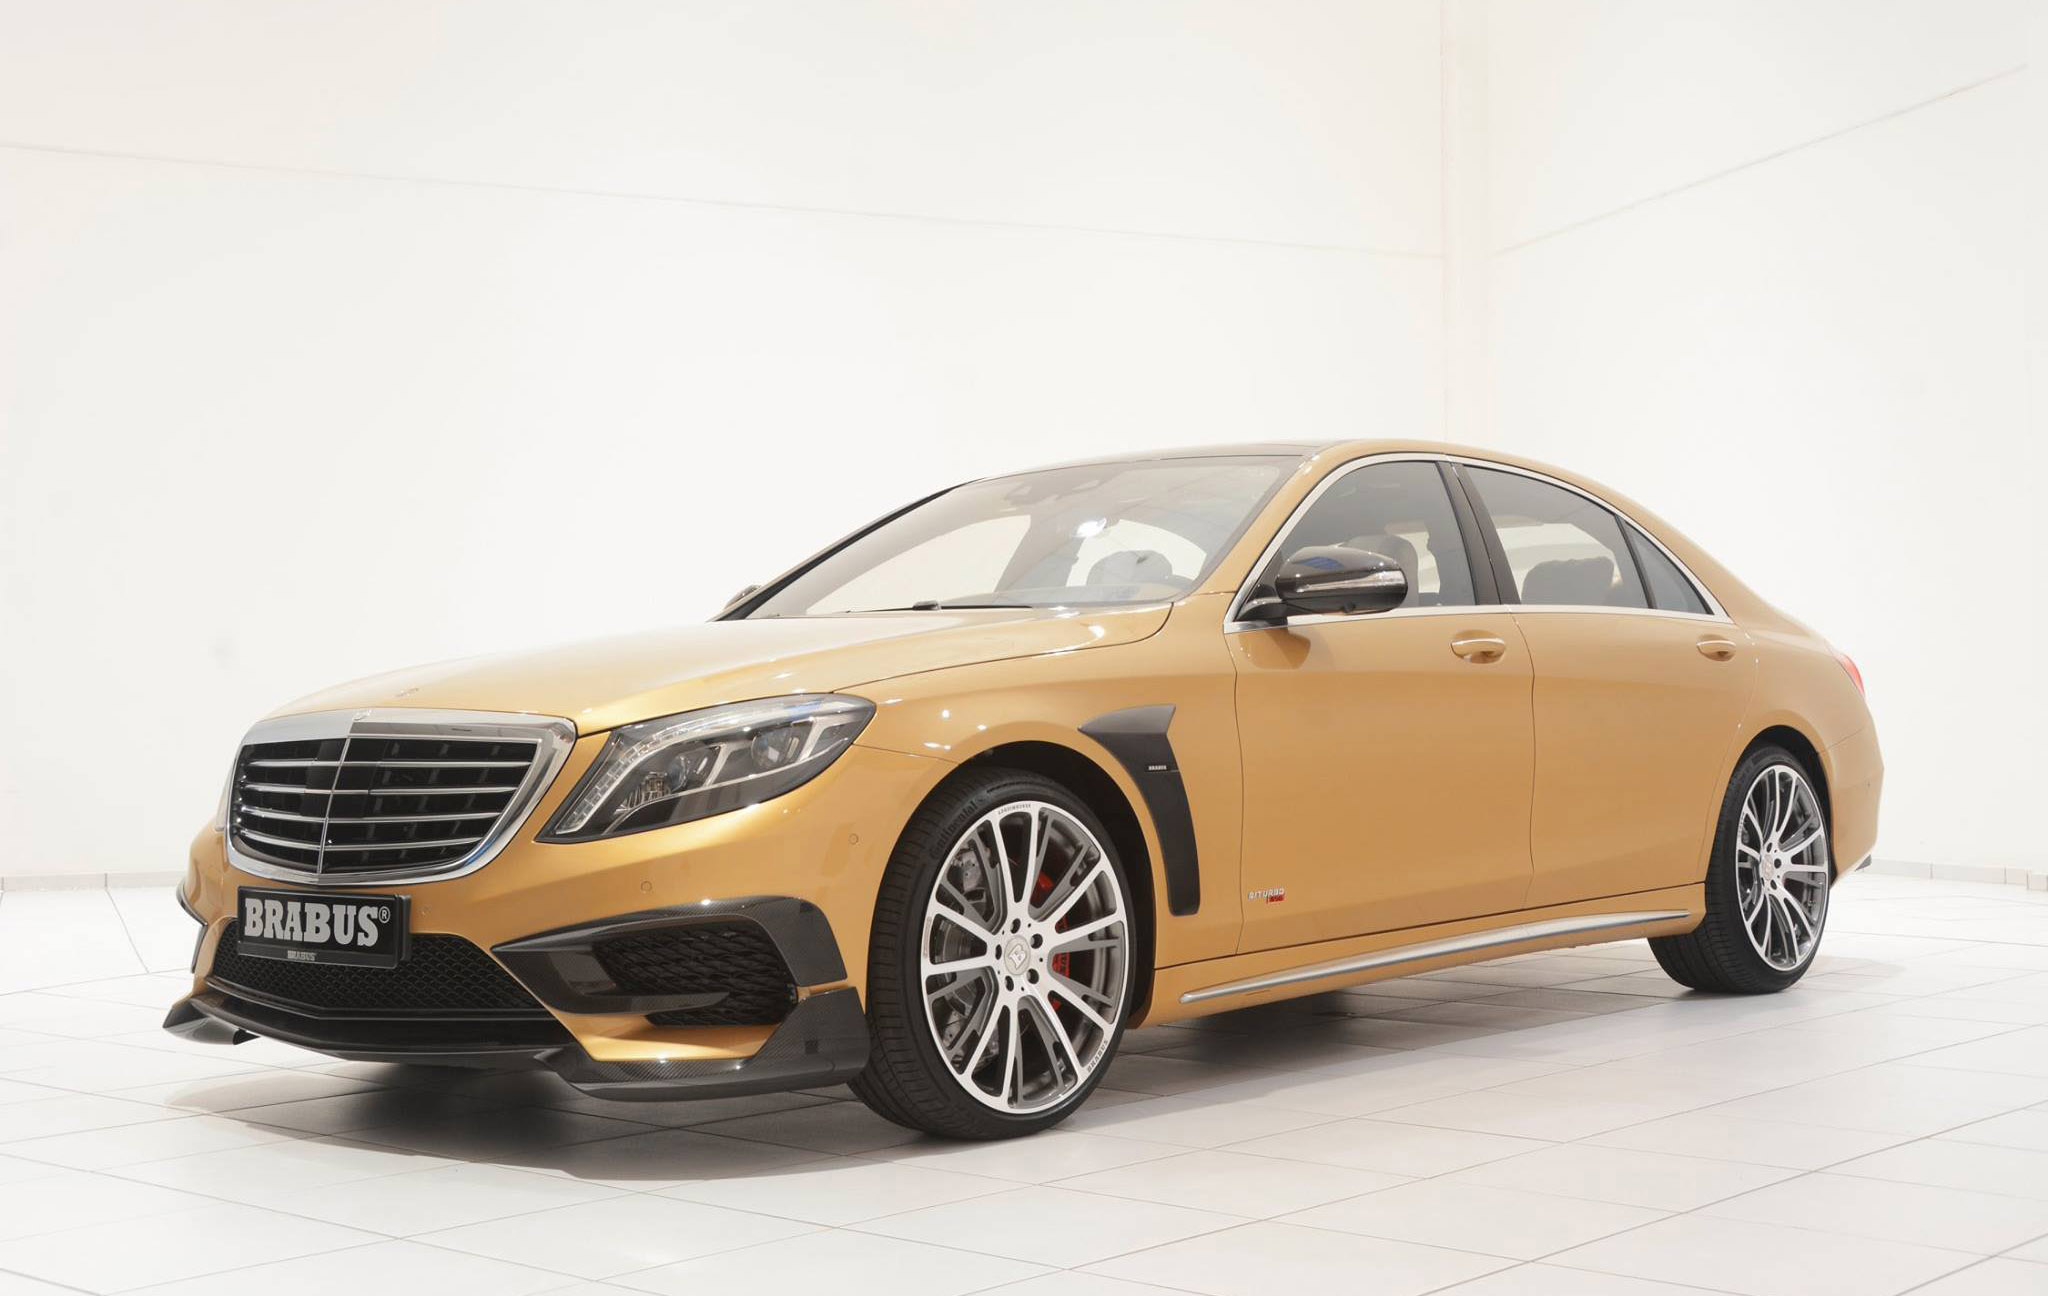 Mercedes benz s63 amg reworked by brabus for Pictures of a mercedes benz